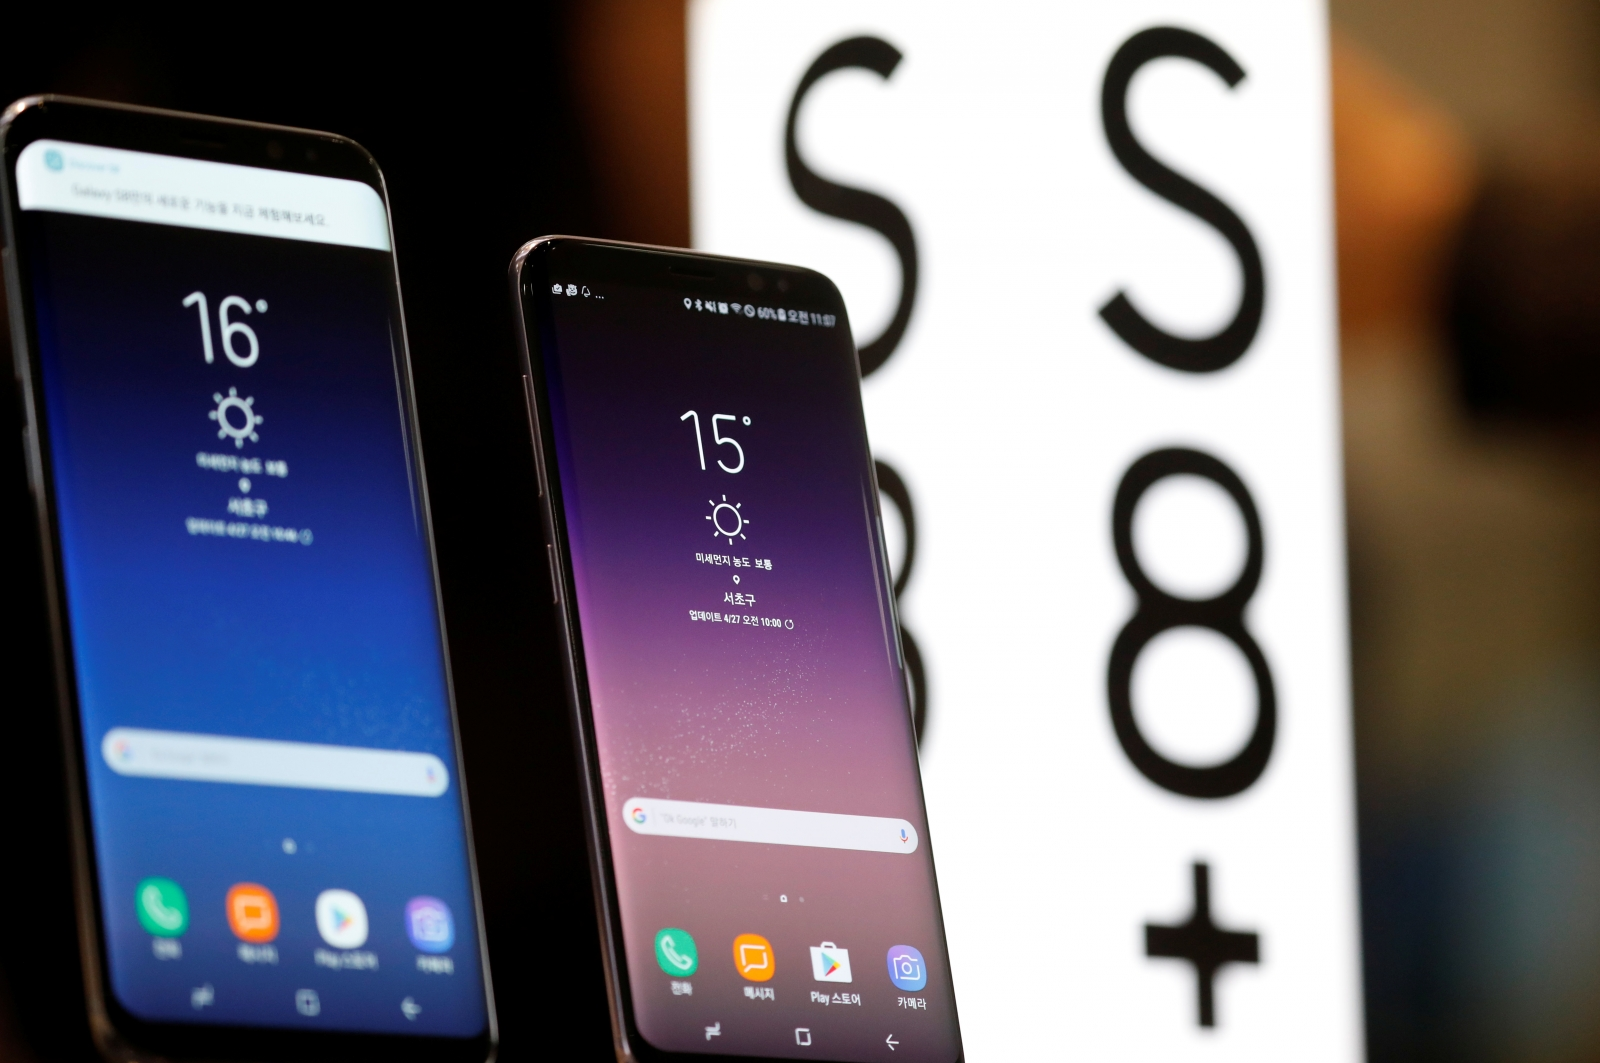 Samsung to investors: We don't need to change ... too much